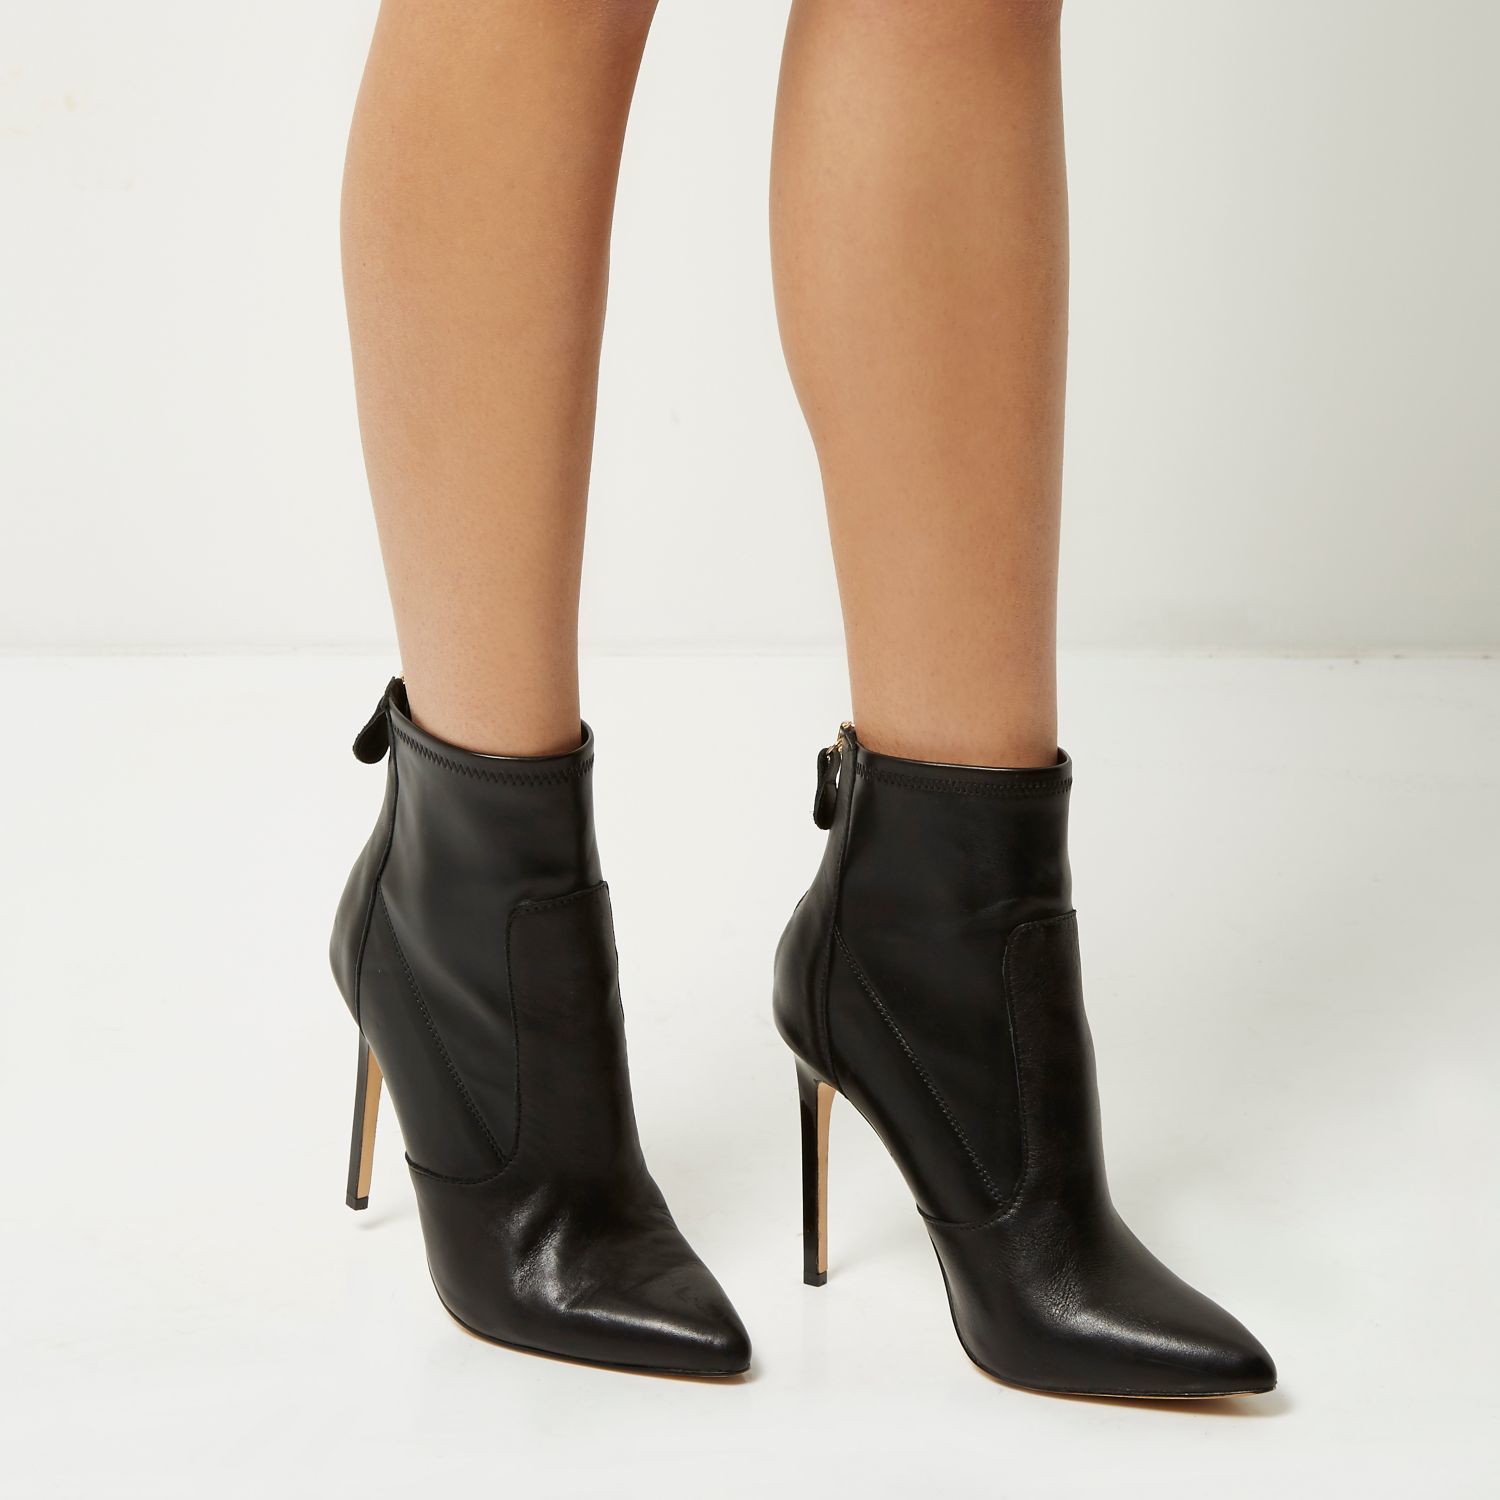 669297c0ee23 River island Black Leather Stretch Heeled Ankle Boots in Black